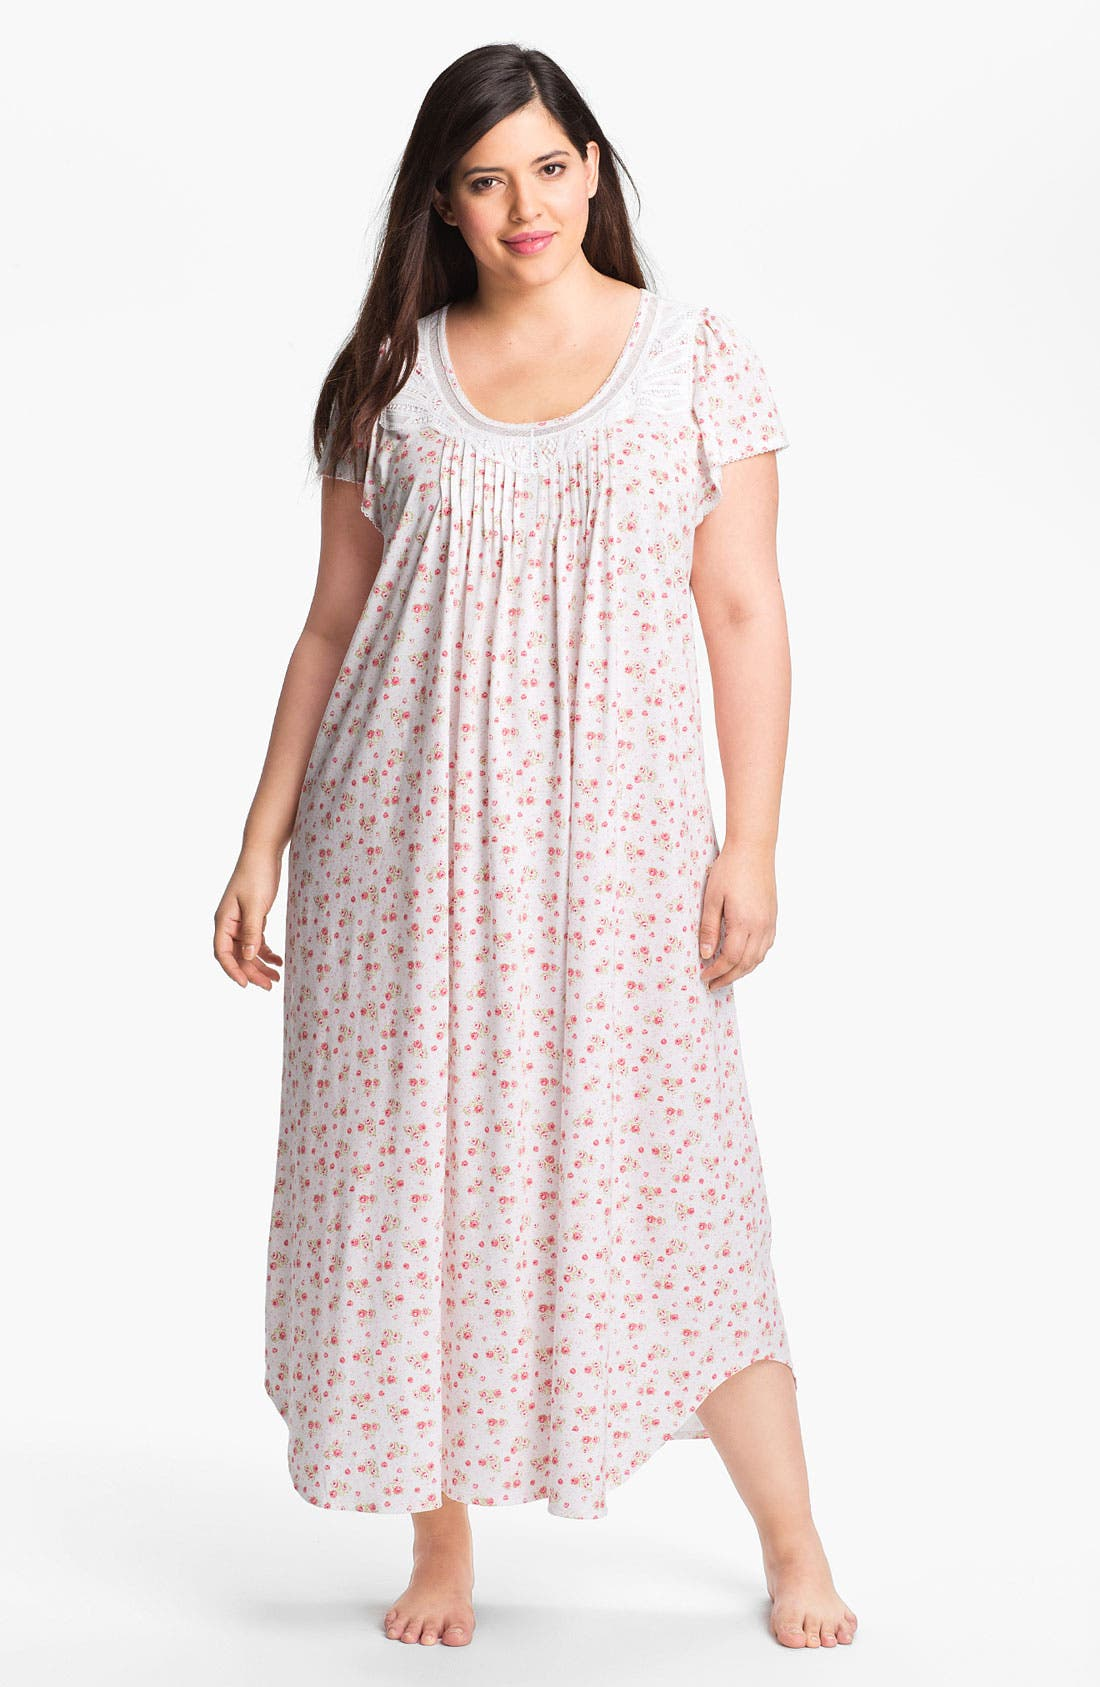 Alternate Image 1 Selected - Carole Hochman Designs 'Rose Cottage' Nightgown (Plus)